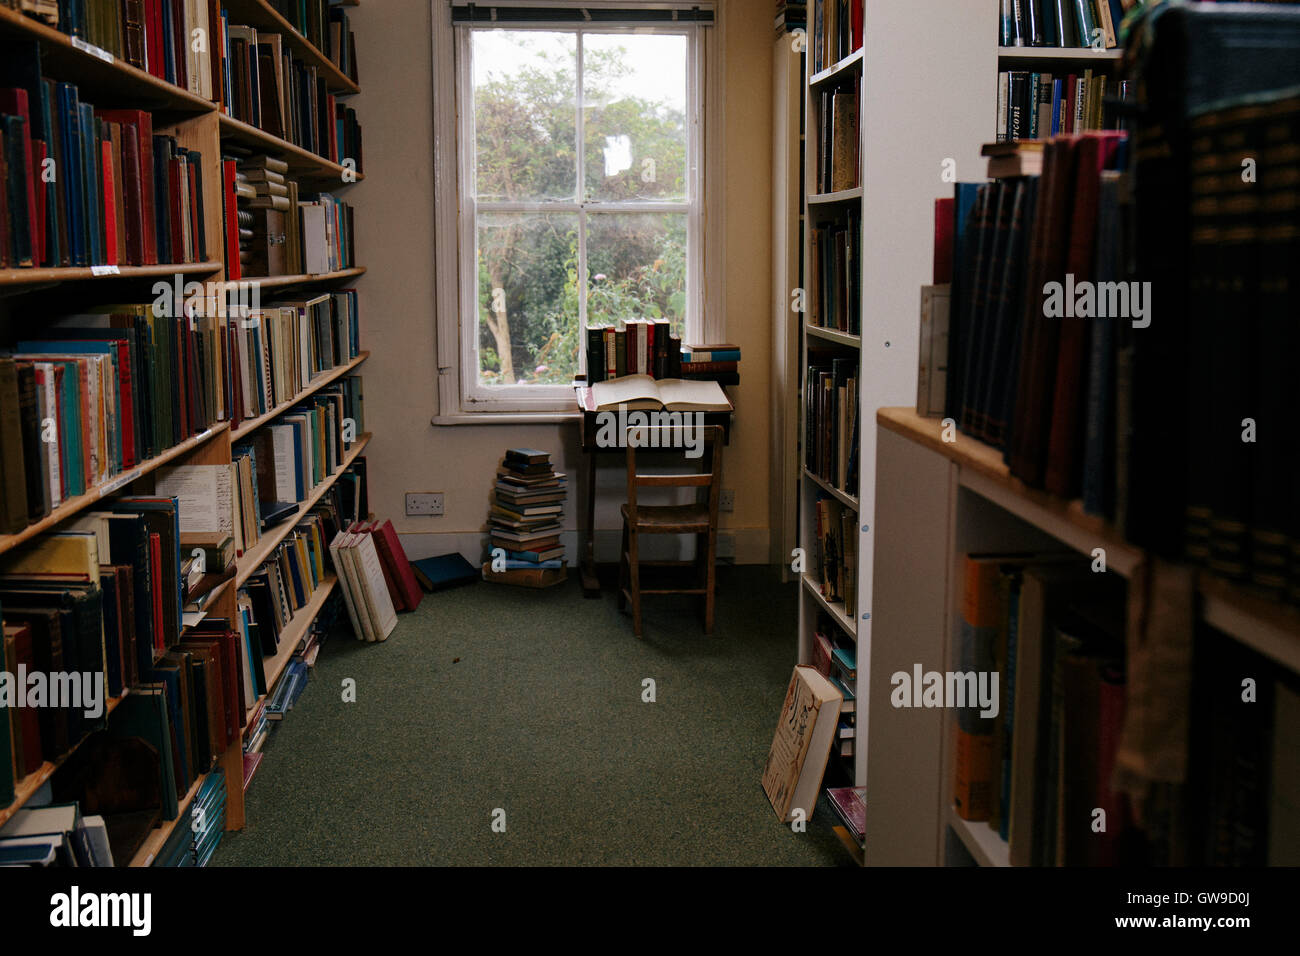 Inside a secondhand bookshop - Stock Image